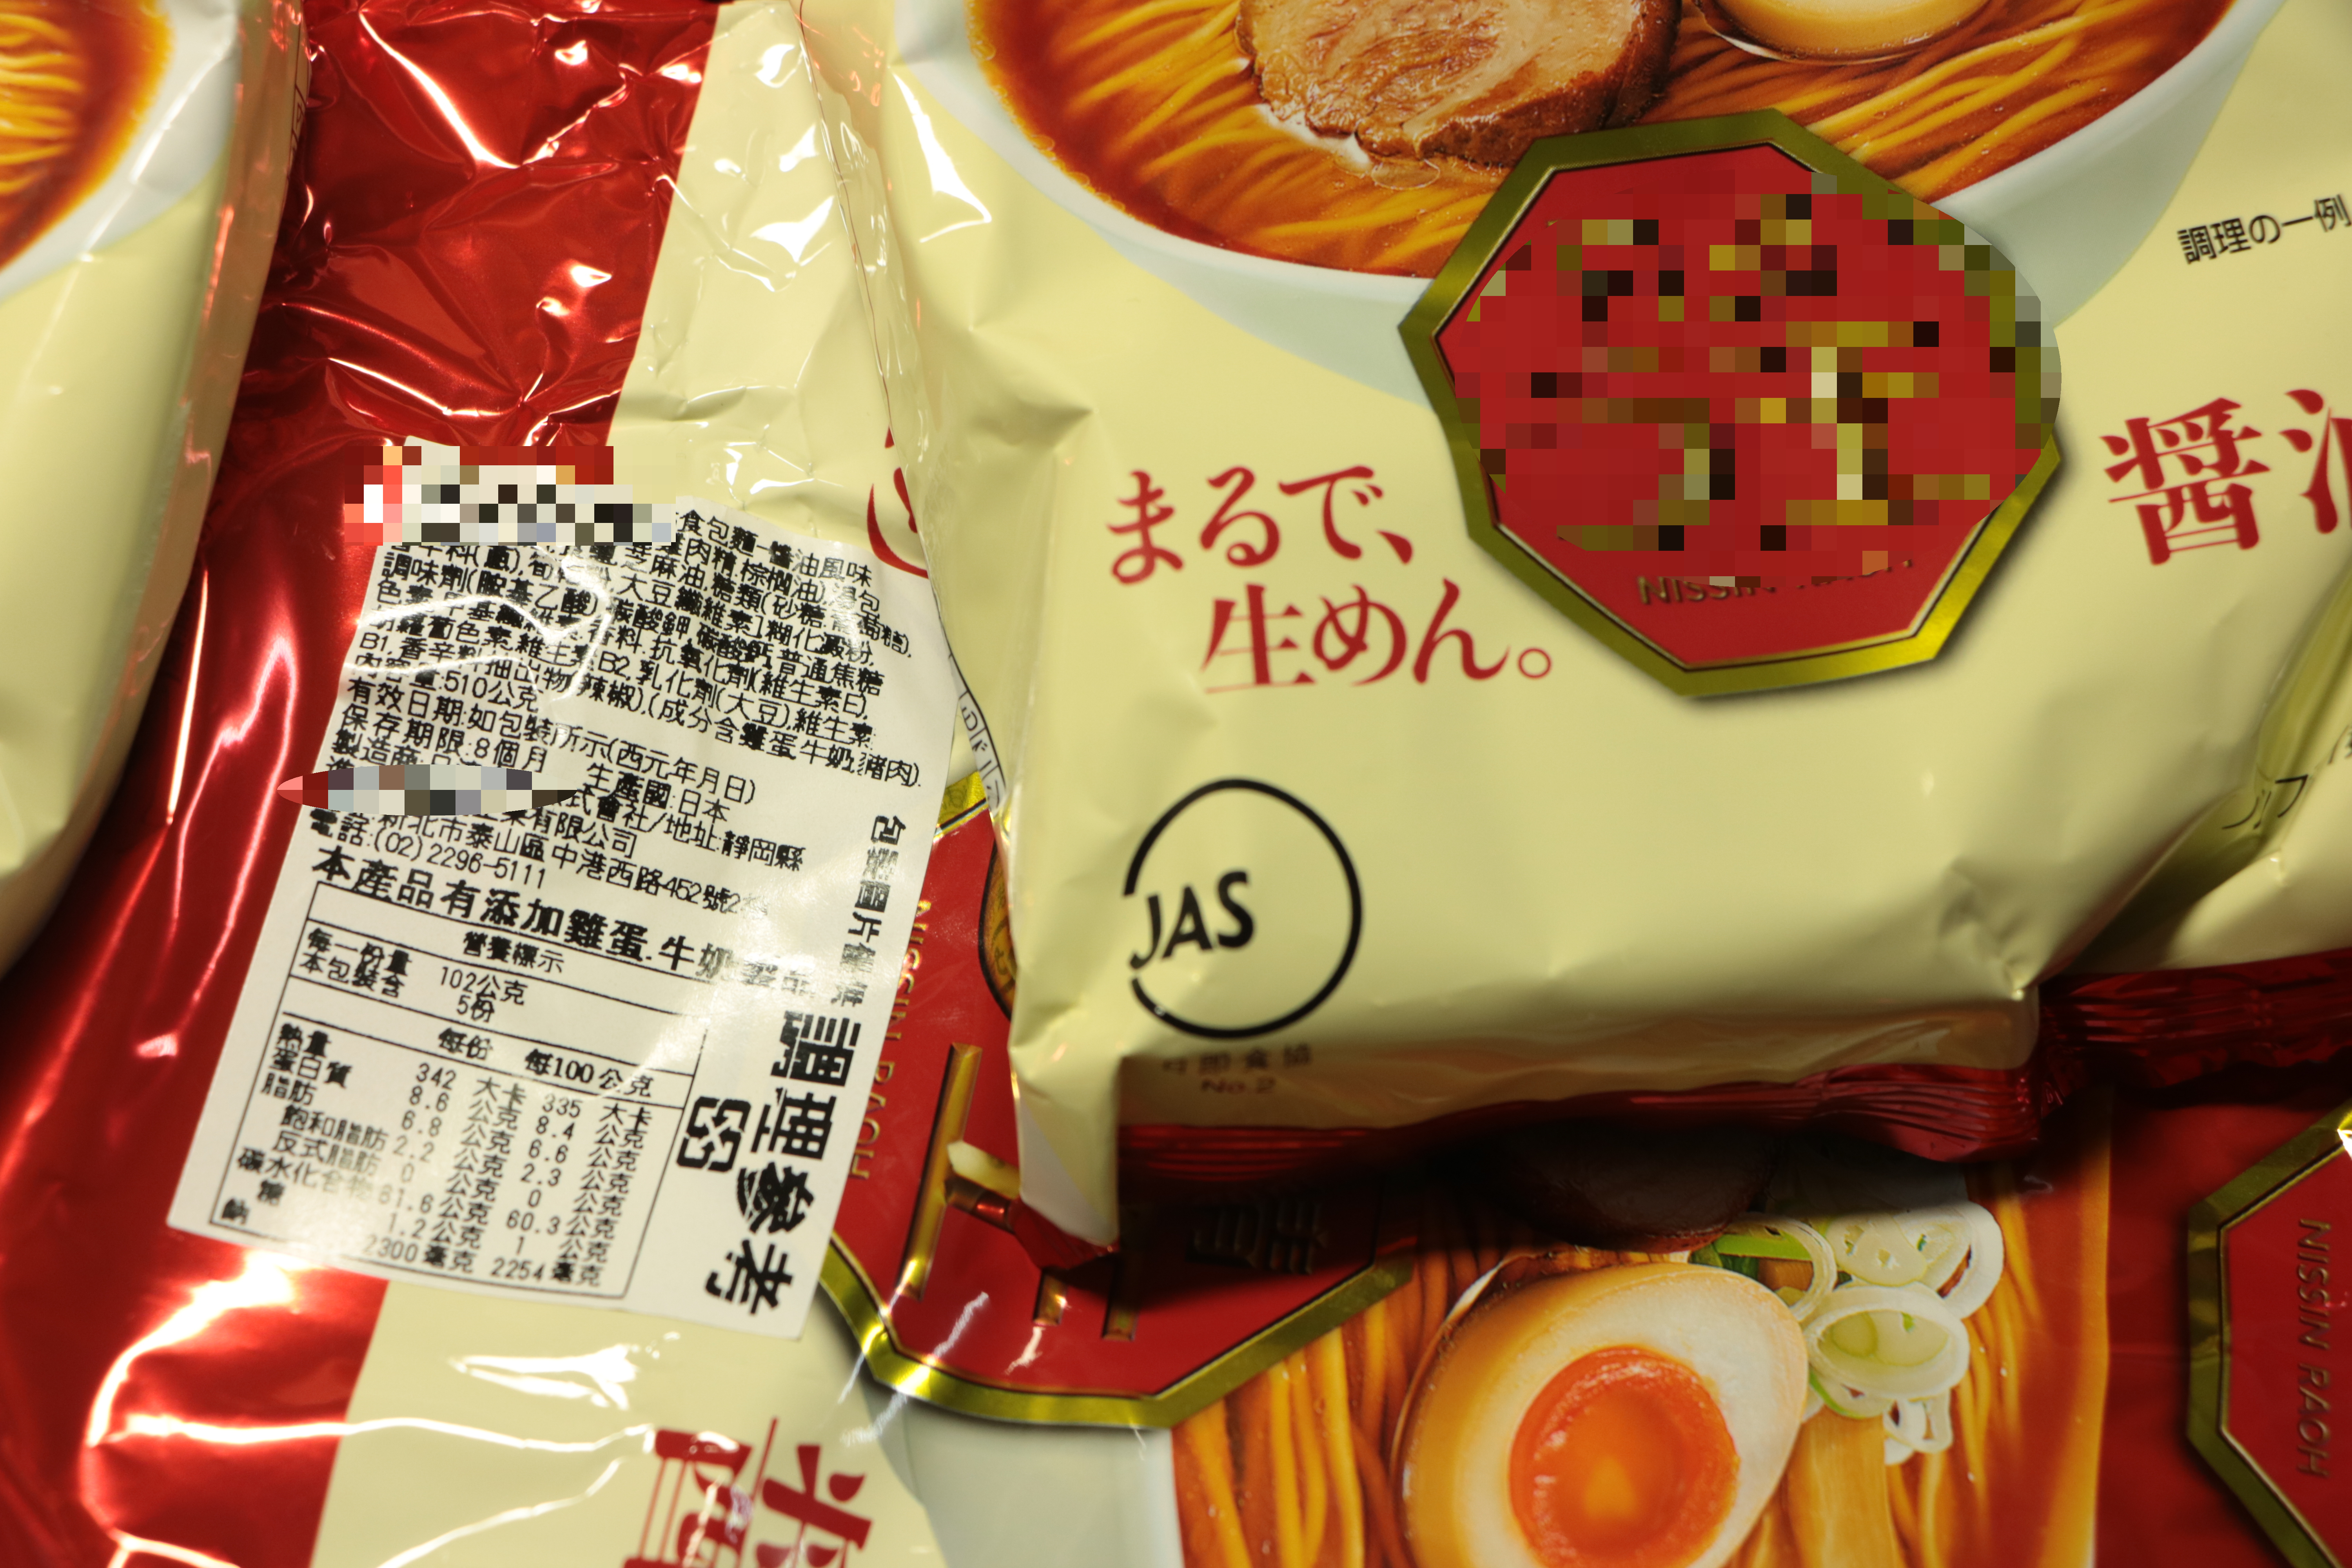 People should look at origin and deadline carefully before buying products. Photo/ Tsou, Fang-ting